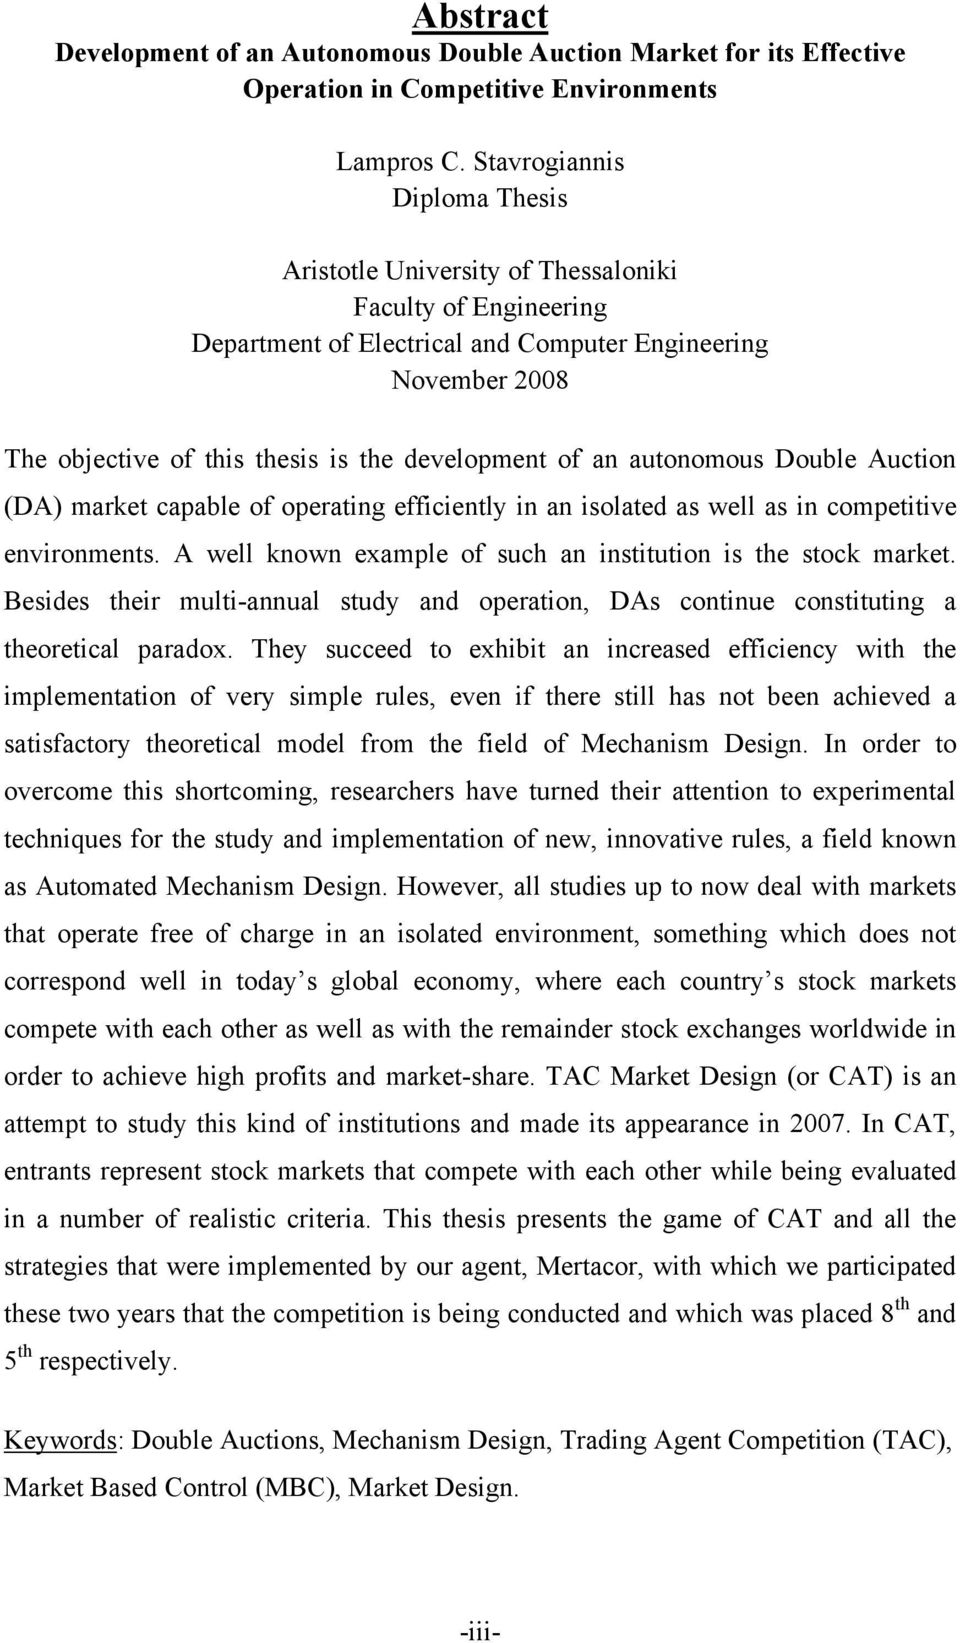 development of an autonomous Double Auction (DA) market capable of operating efficiently in an isolated as well as in competitive environments.